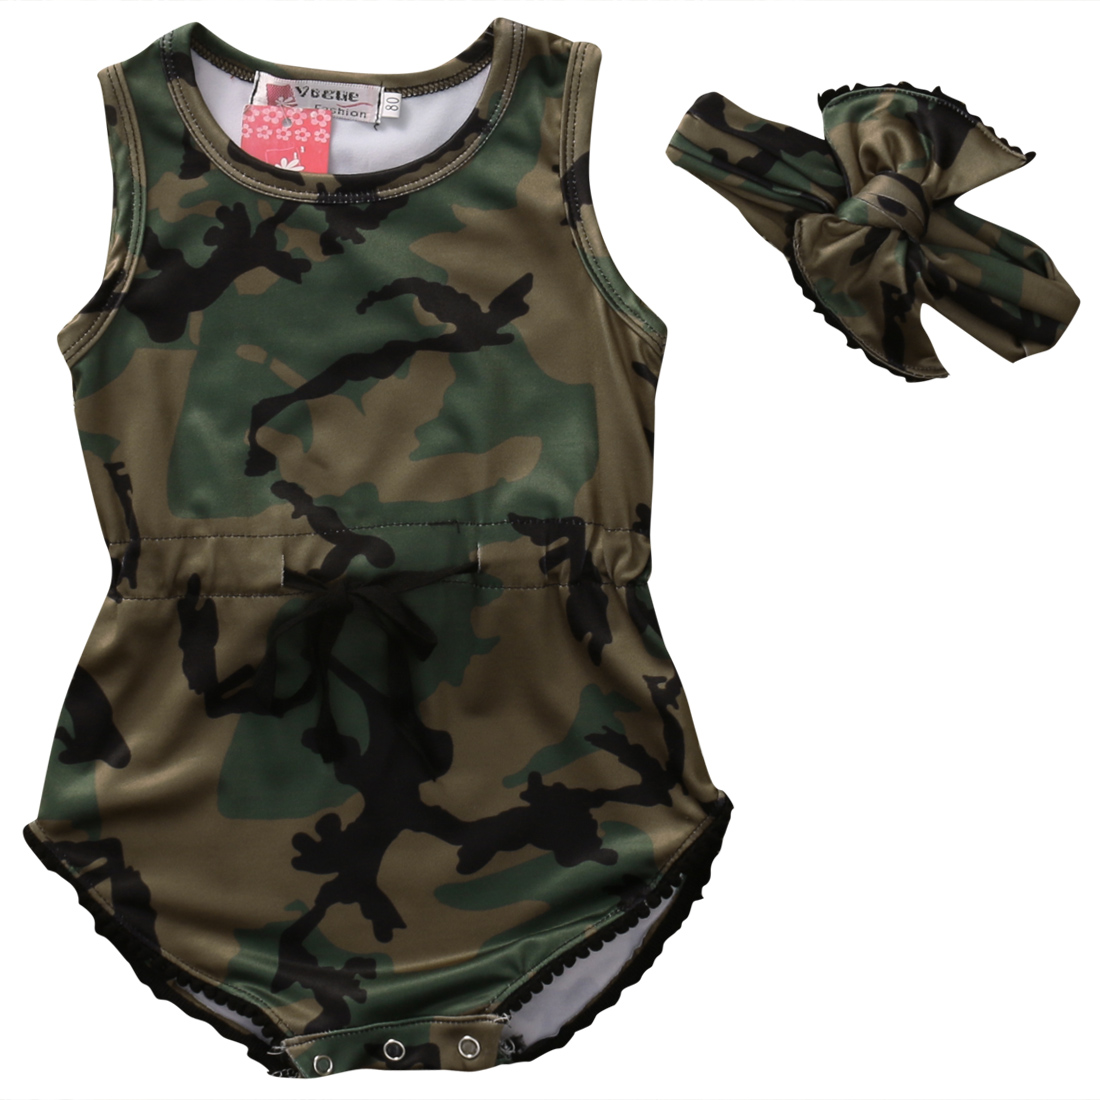 2PCS Newborn Baby Boy Girl Clothes 2017 Summer Sleeveless Camouflage Romper Baby Bodysuit +Headband 2PCS Outfits Kid Bebek Giyim 3pcs newborn baby girl clothes set long sleeve letter print cotton romper bodysuit floral long pant headband outfit bebek giyim